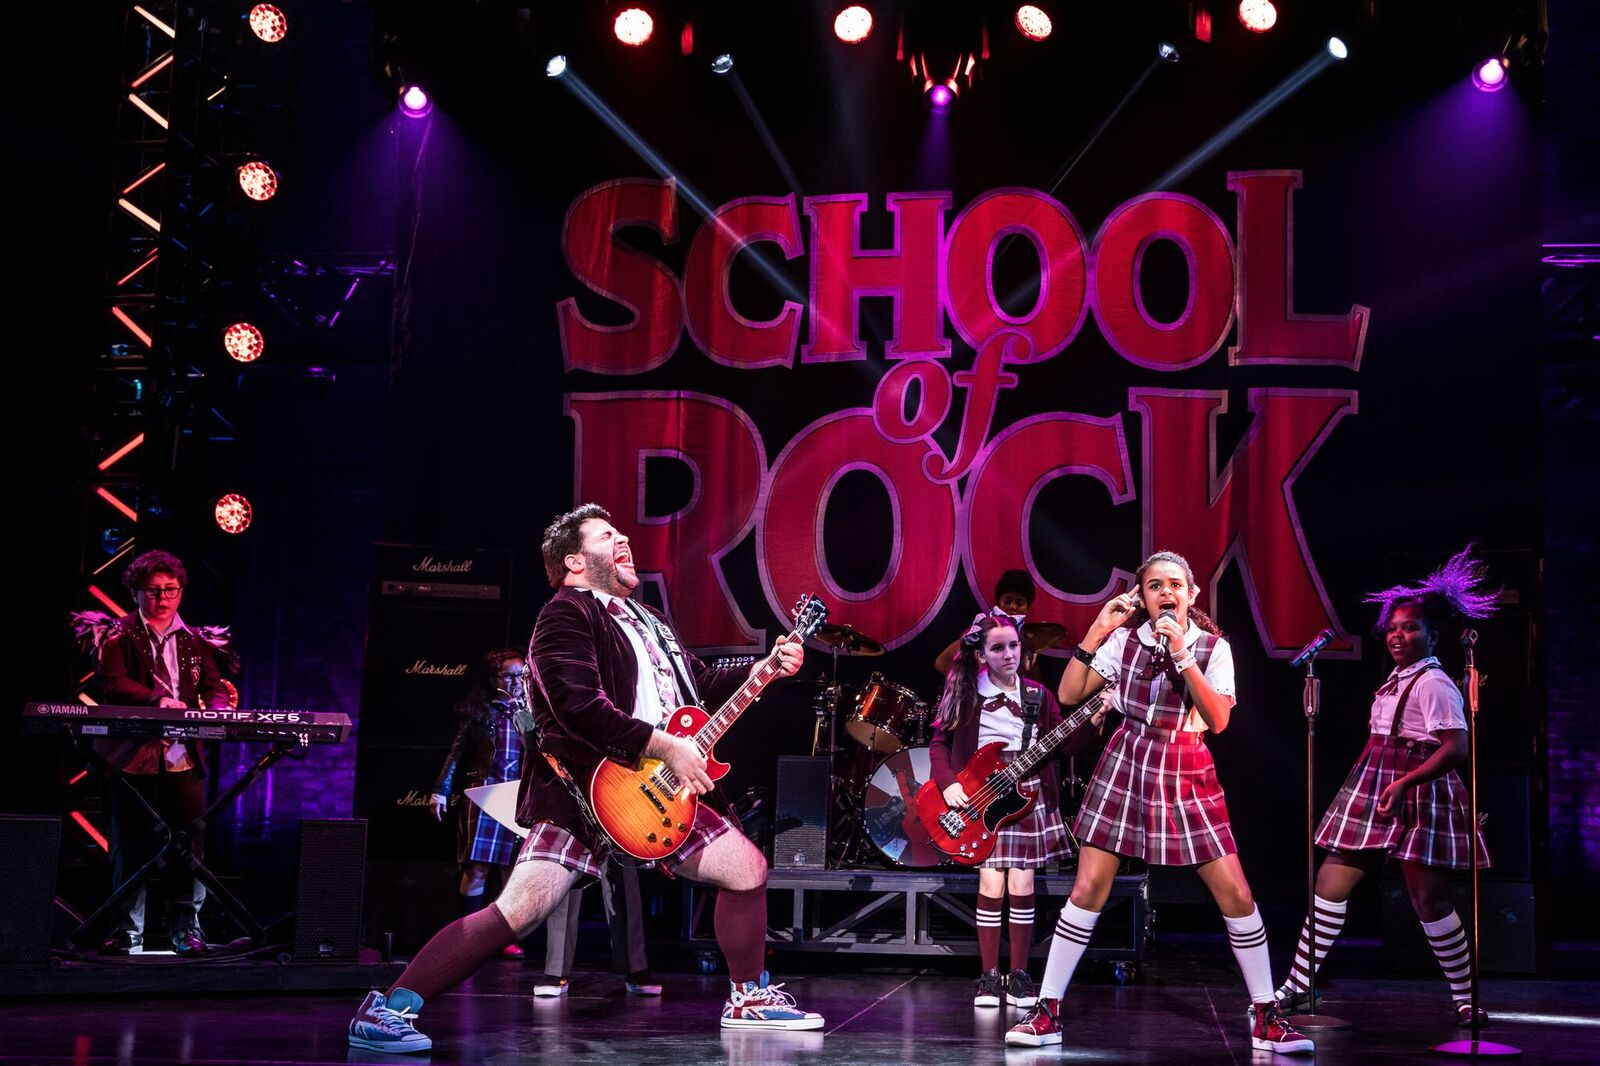 school-of-rock-tour-7_preview